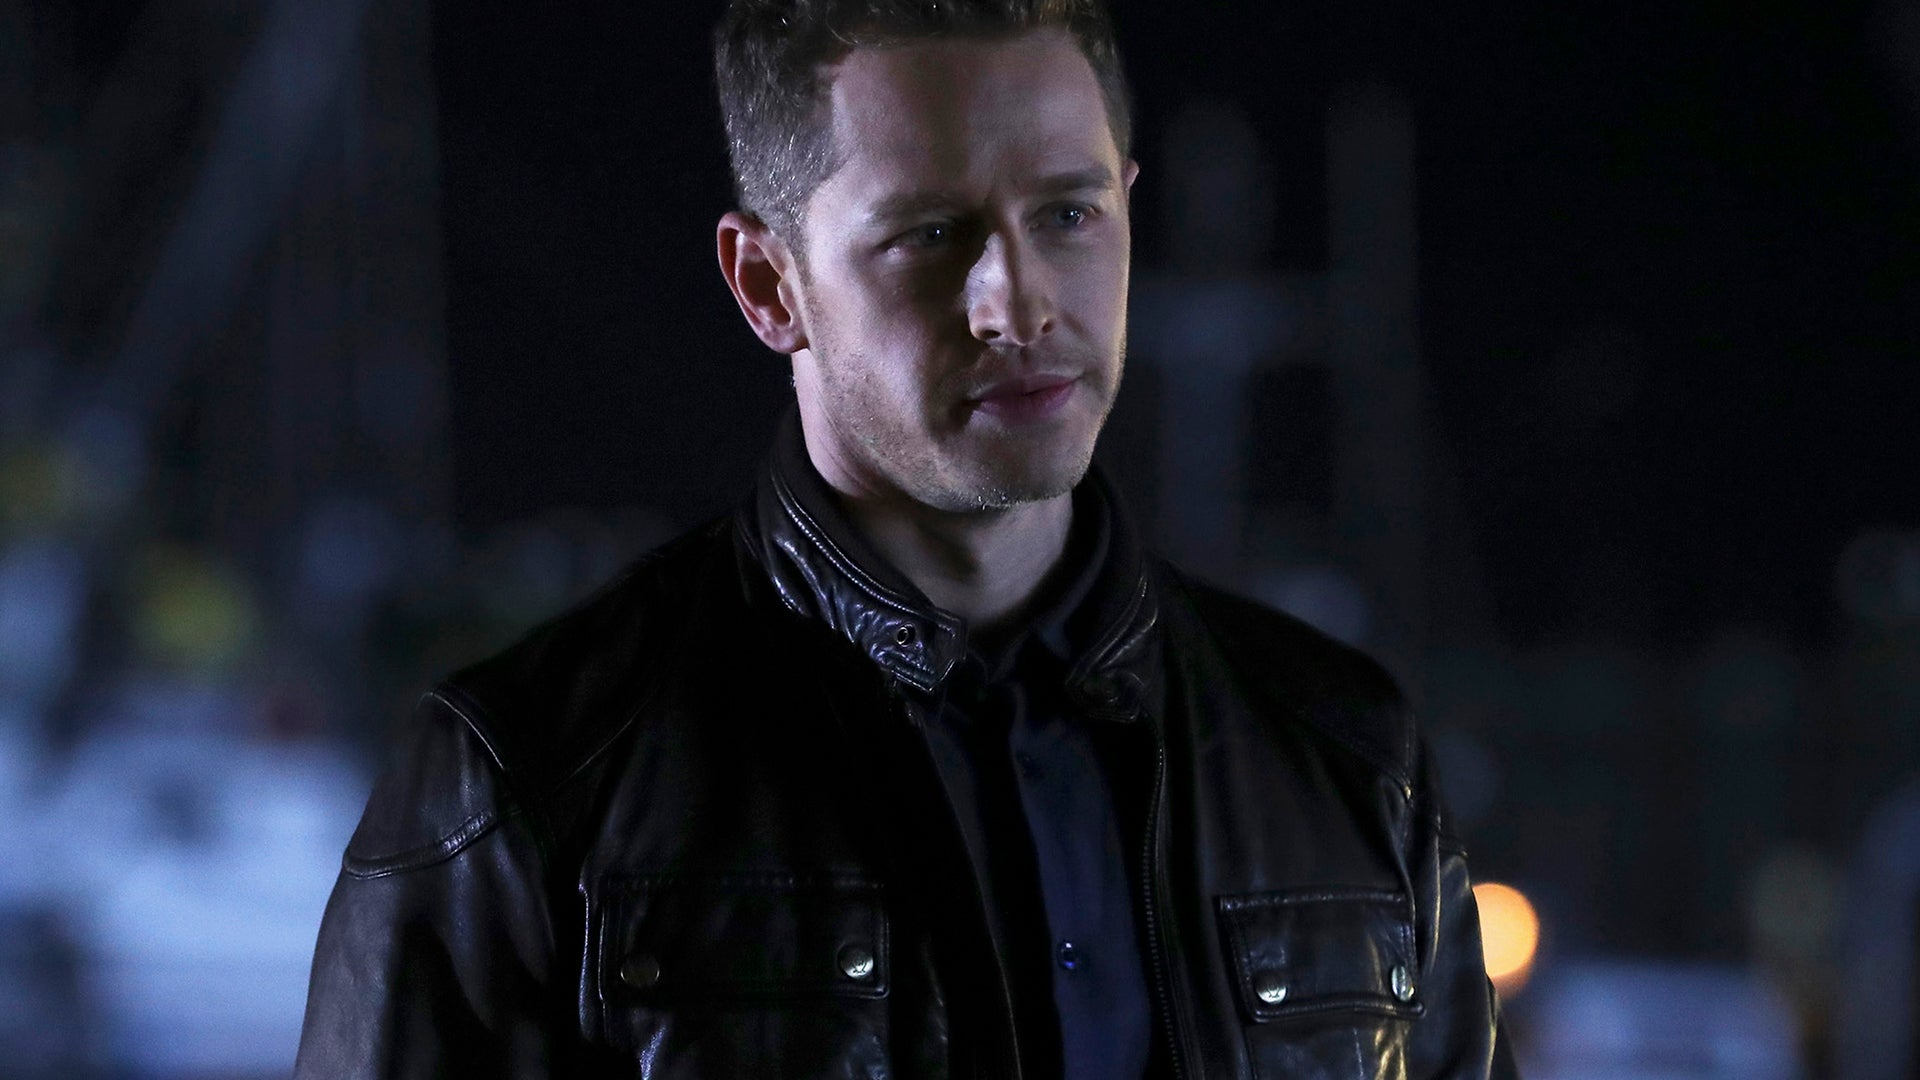 Josh Dallas, Once Upon a Time